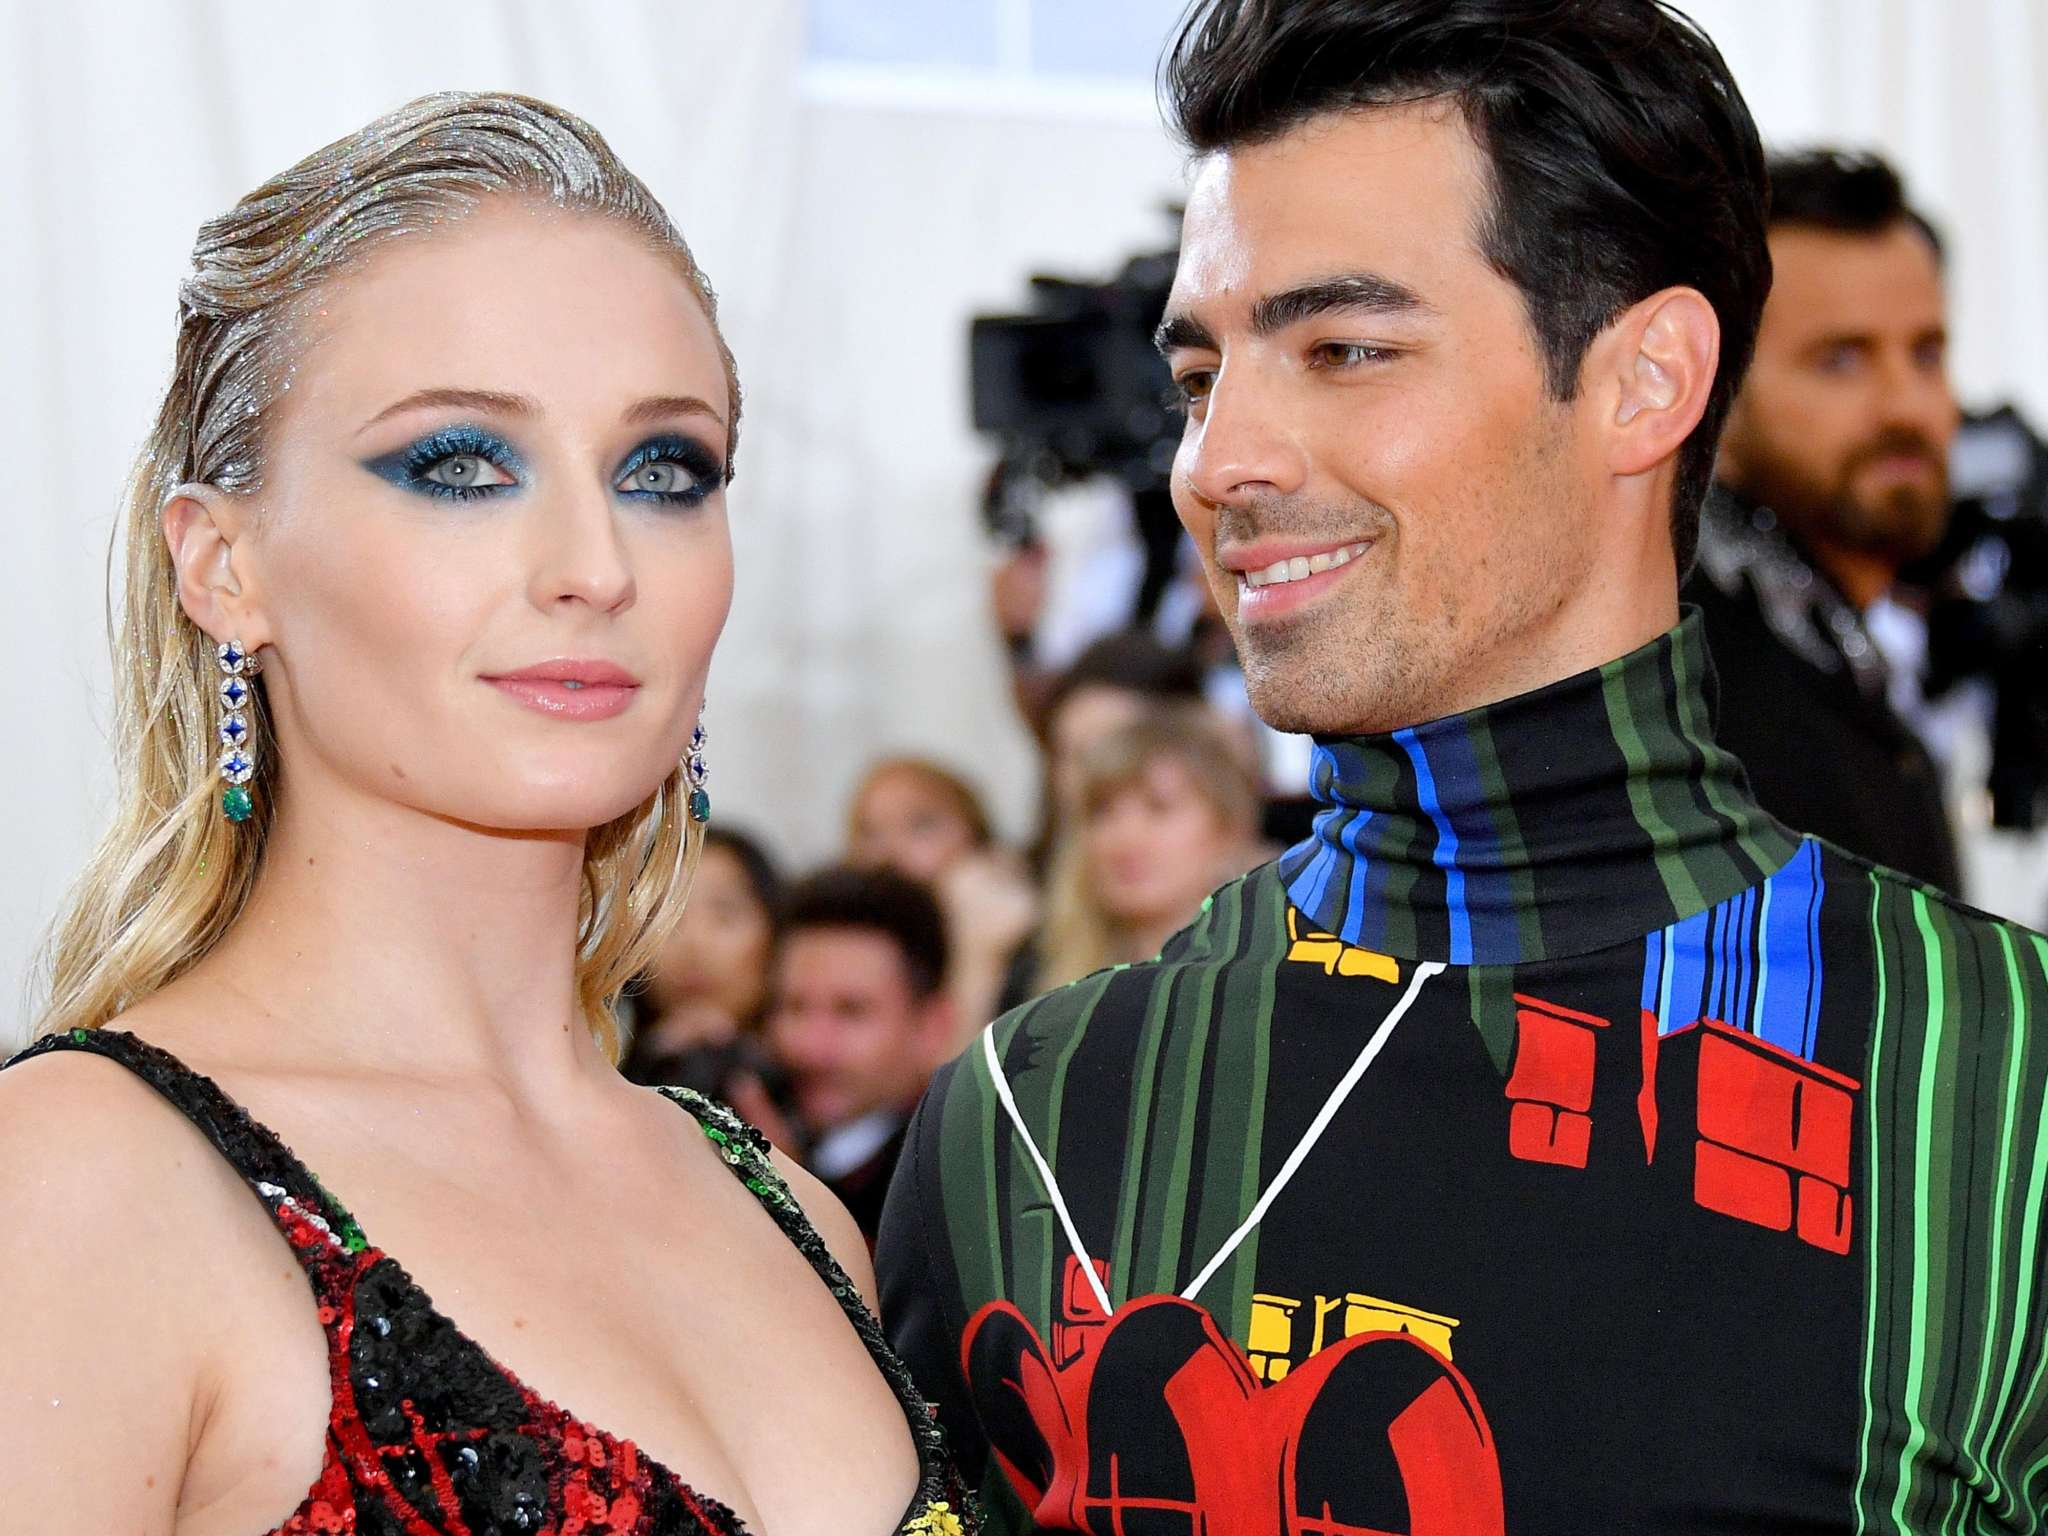 Joe Jonas And Sophie Turner Closer Than Ever While Making A Great Team As New Parents!